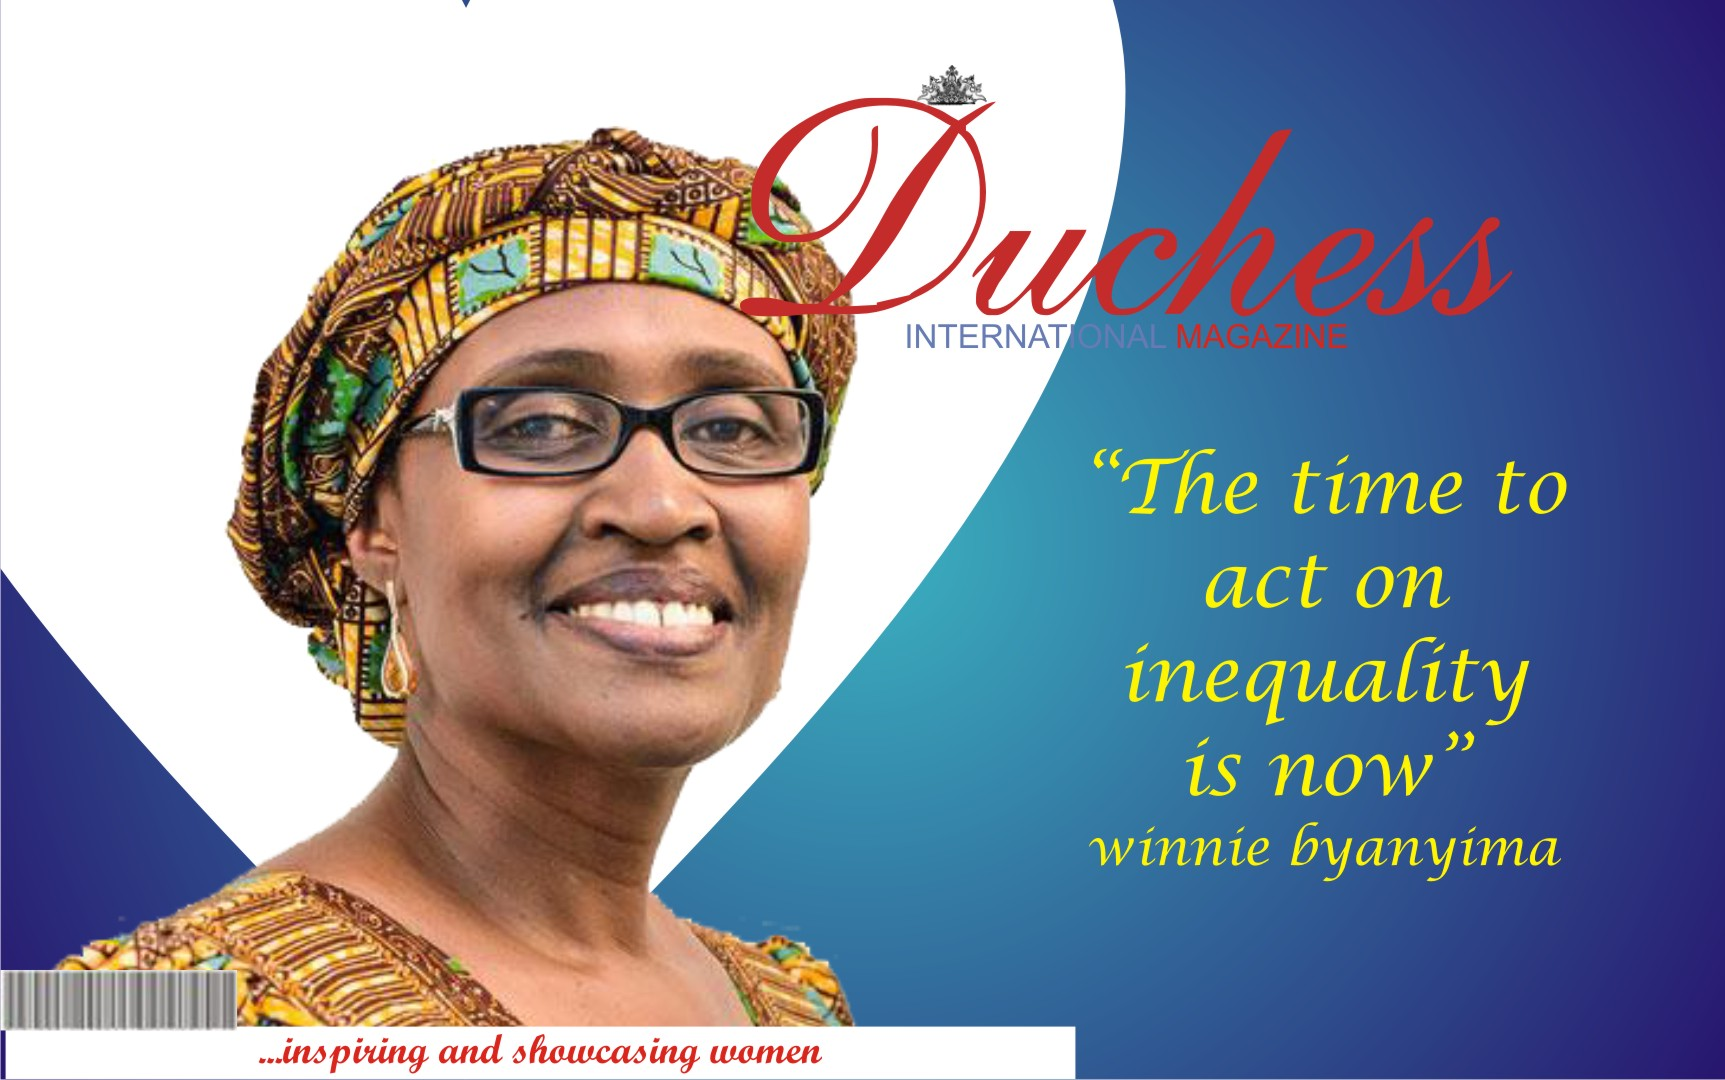 Winnie Byanyima: A True Example of Diligence and Determination.